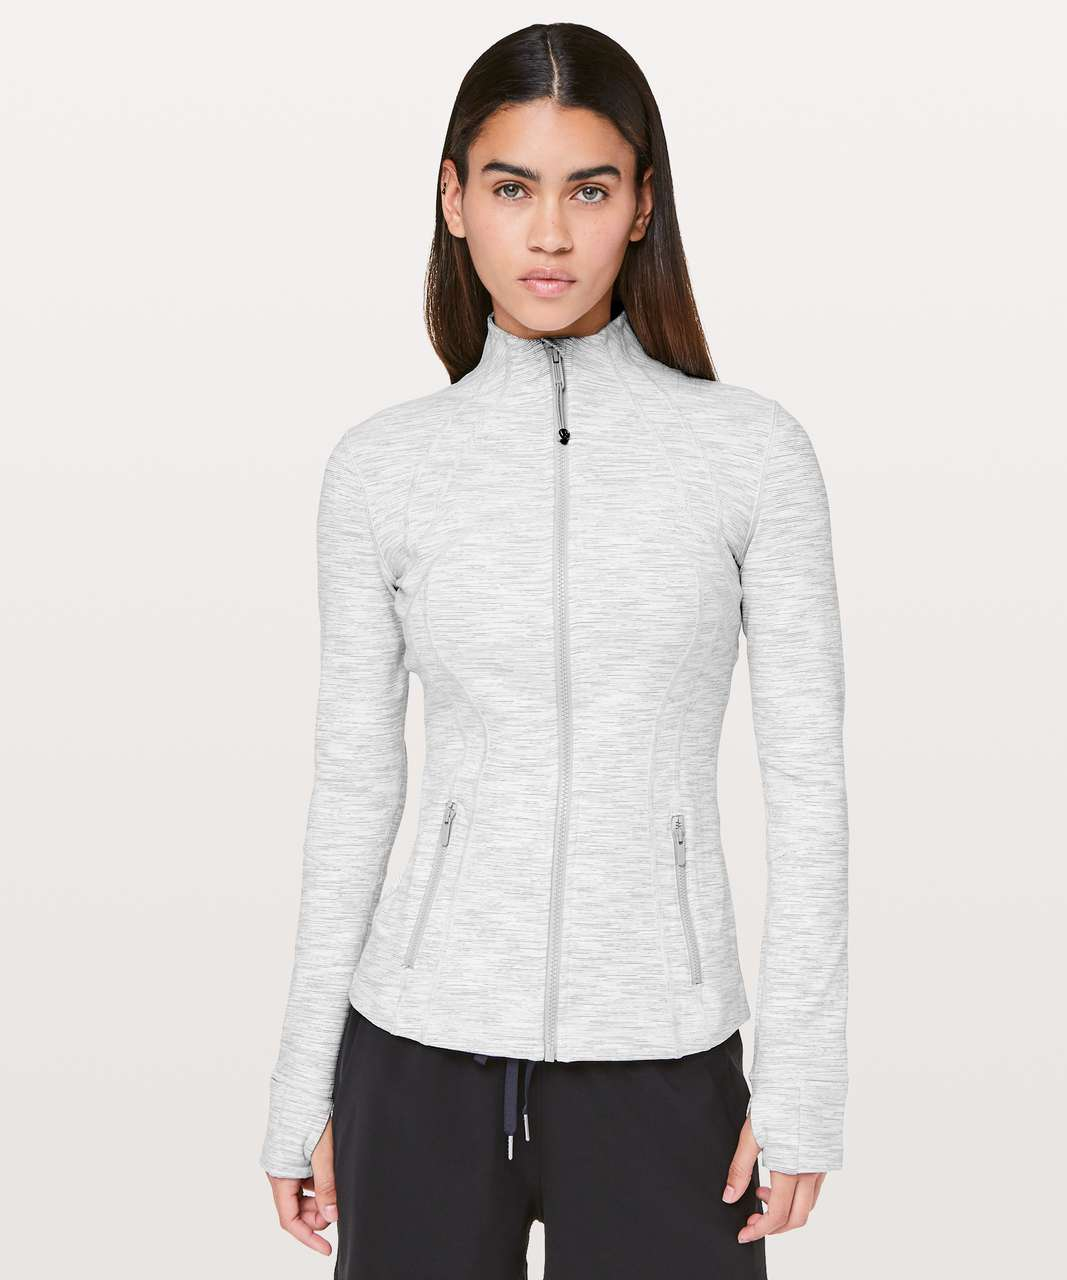 Lululemon Define Jacket - Wee Are From Space Nimbus Battleship